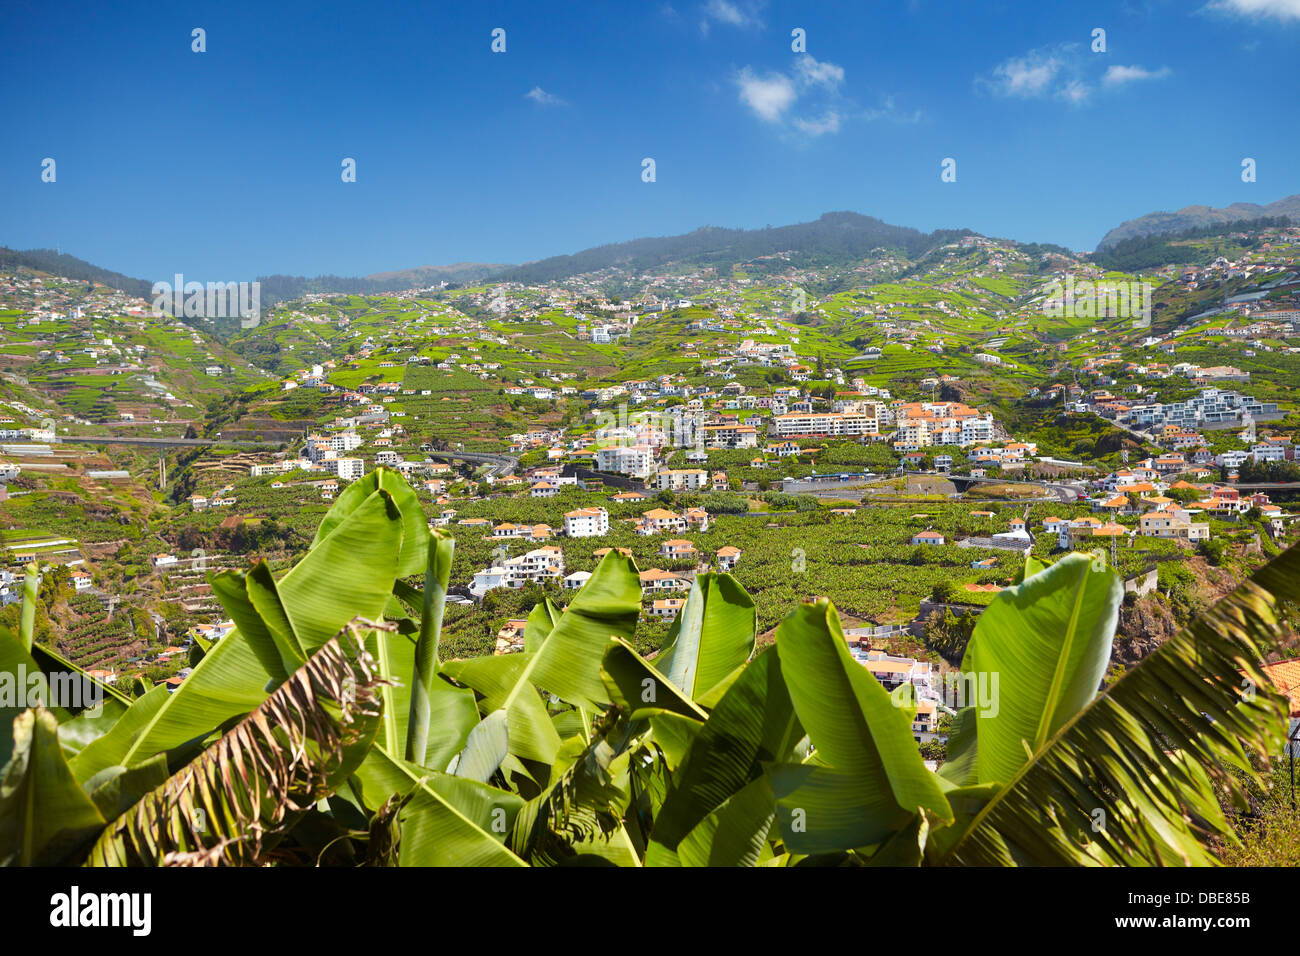 Banana plants cultivation - Camara de Lobos, Madeira Island, Portugal - Stock Image